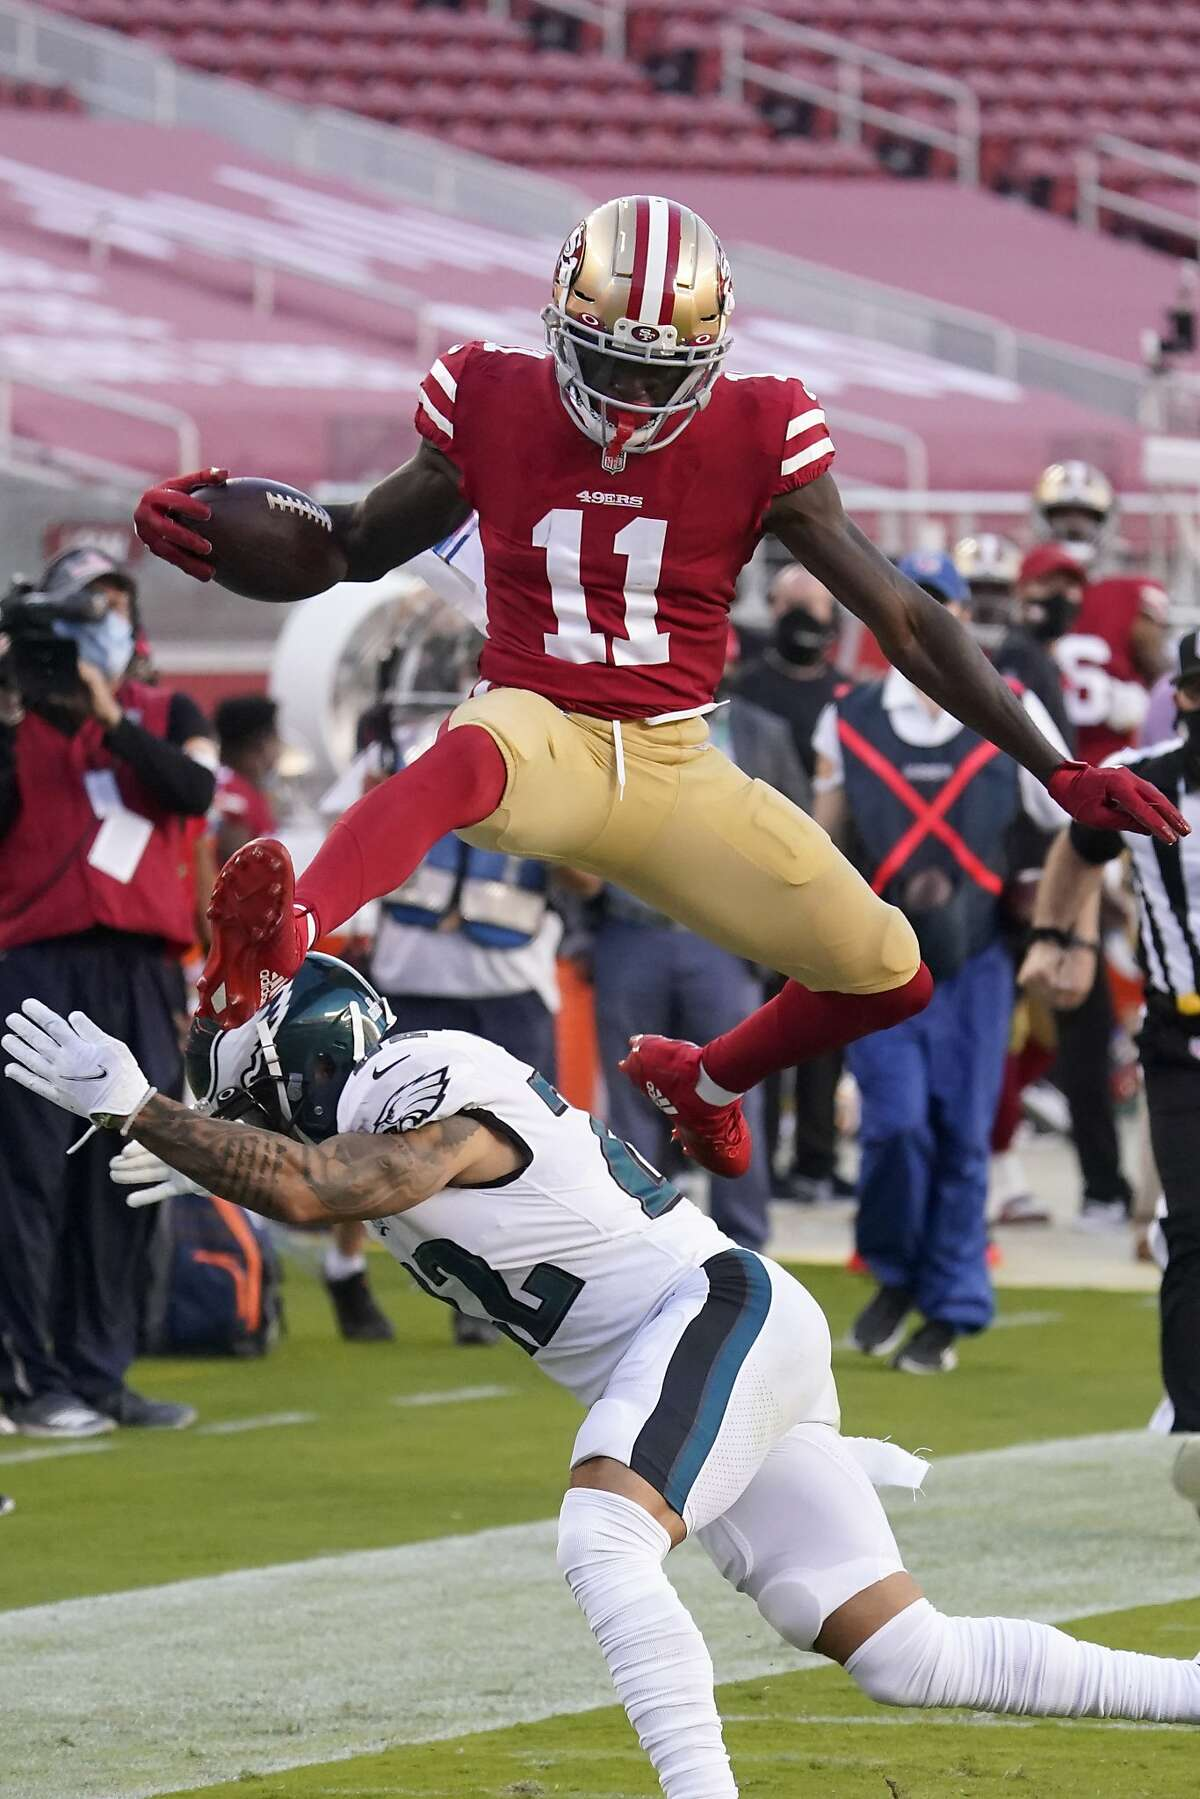 San Francisco 49ers wide receiver Brandon Aiyuk (11) jumps past Philadelphia Eagles safety Marcus Epps (22) to score a touchdown during the first half of an NFL football game in Santa Clara, Calif., Sunday, Oct. 4, 2020. (AP Photo/Tony Avelar)